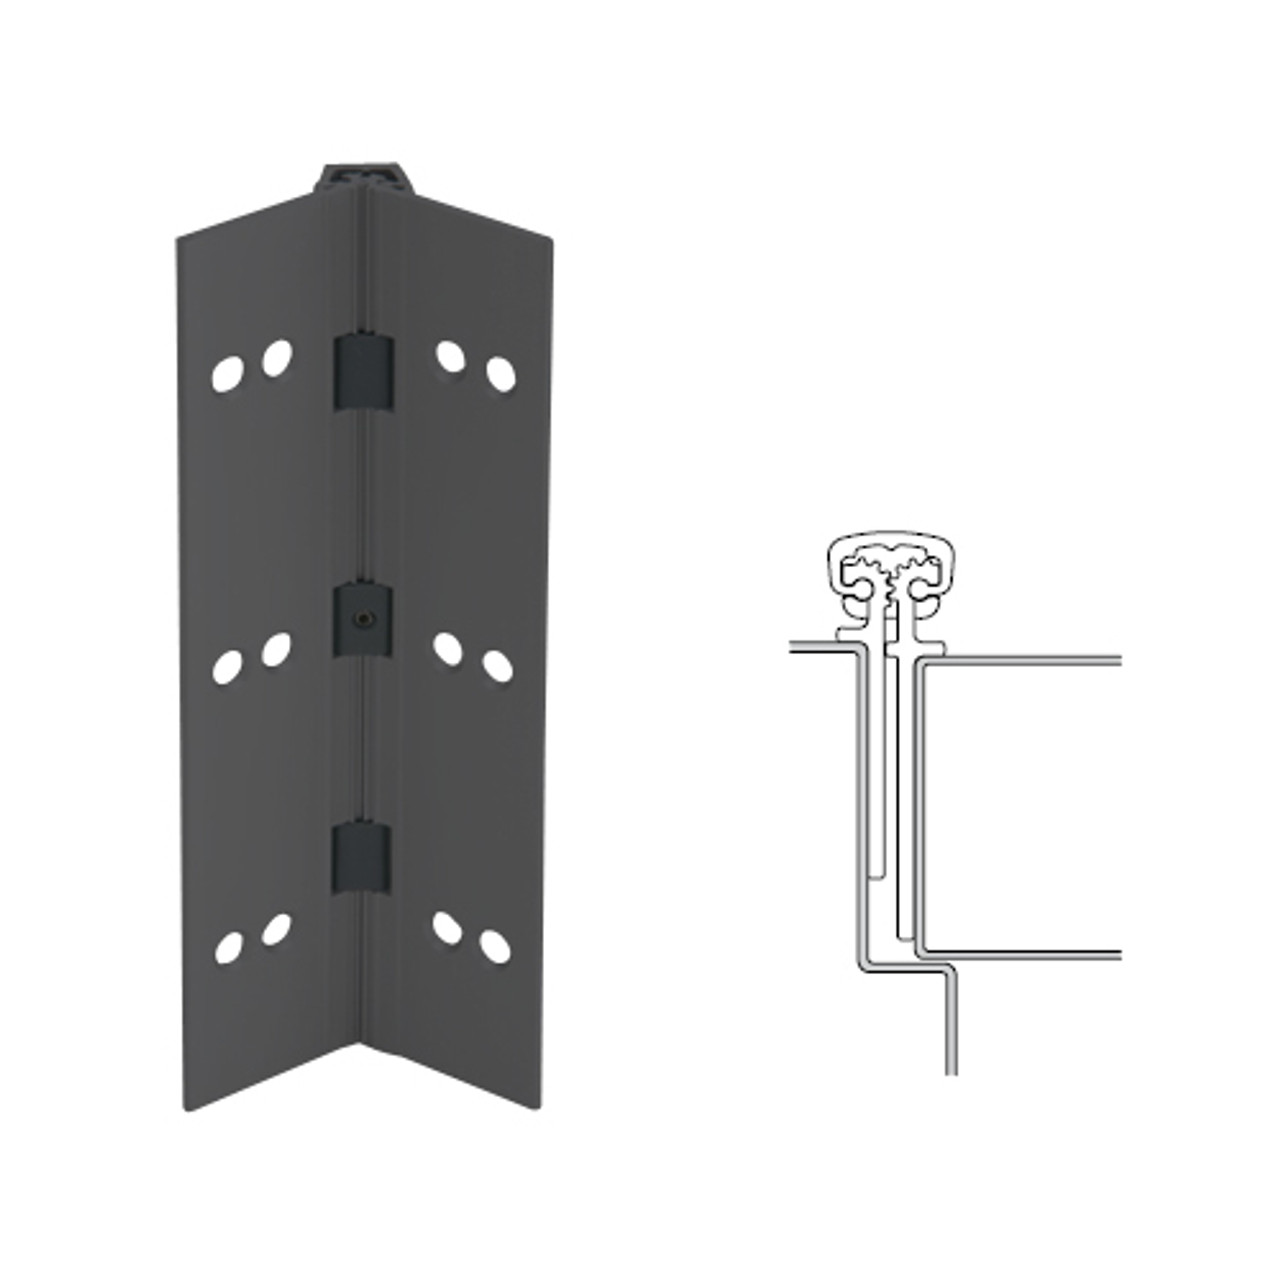 026XY-315AN-95-TEKWD IVES Full Mortise Continuous Geared Hinges with Wood Screws in Anodized Black